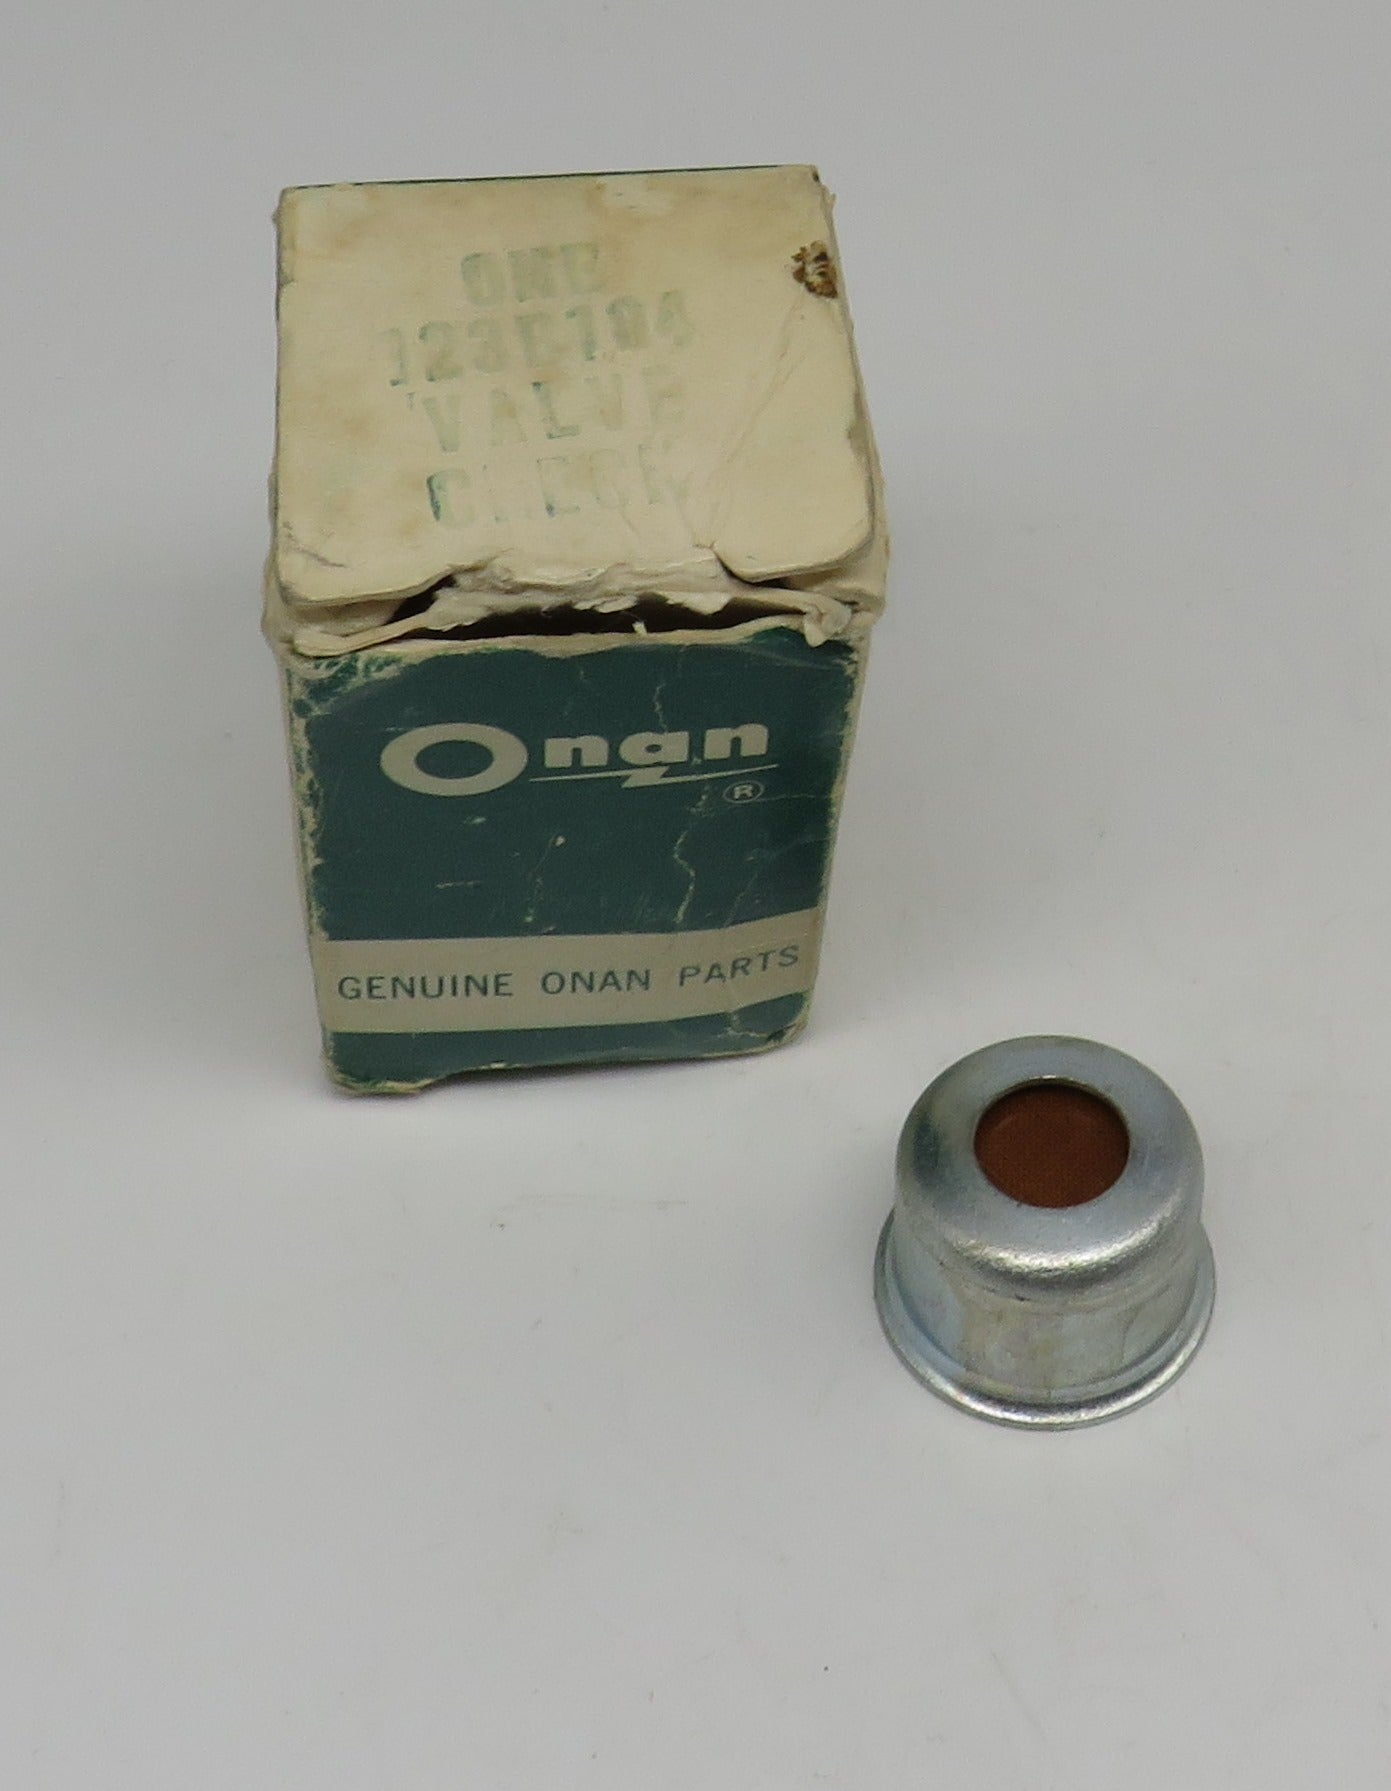 123-0104 Onan Check Valve for CCK Genset RV Electric Generating Set (Spec A-U) OBSOLETE